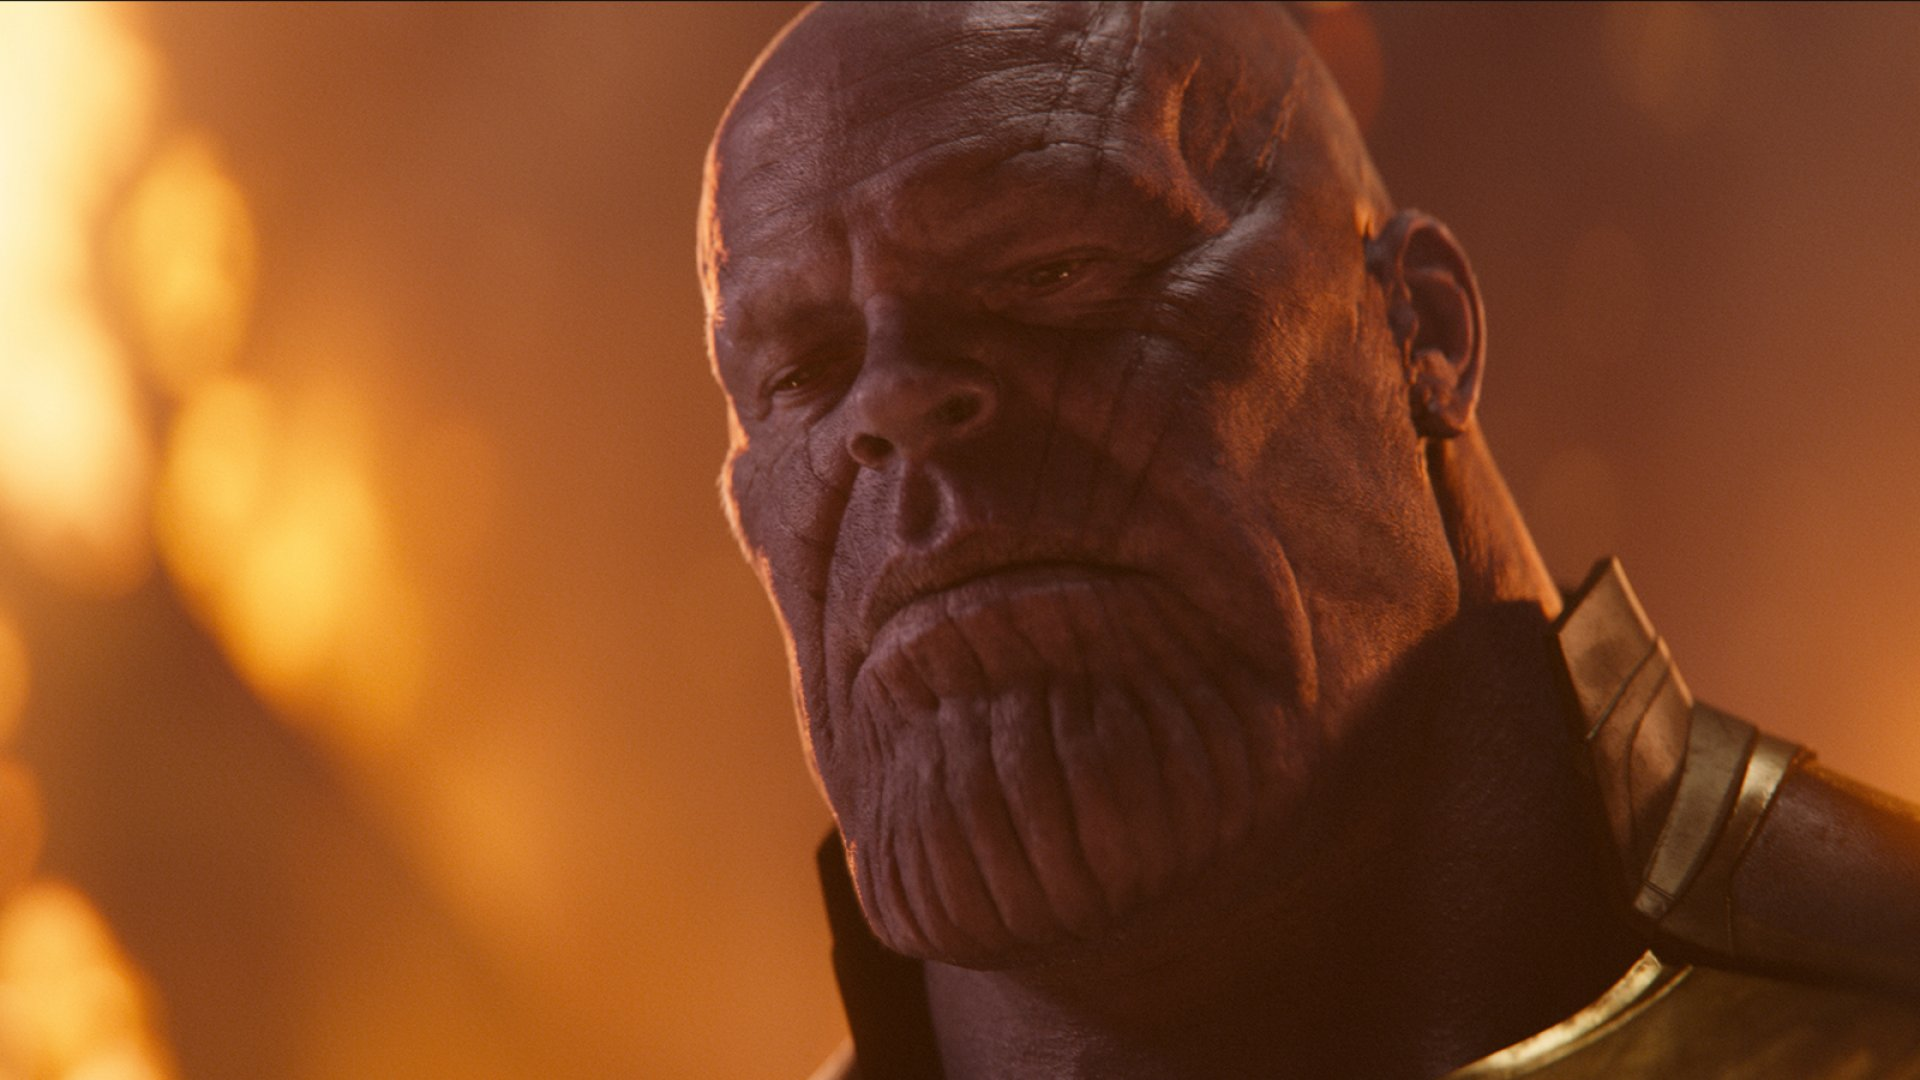 Josh Brolin as Thanos in <em>Avengers: Infinity War</em>